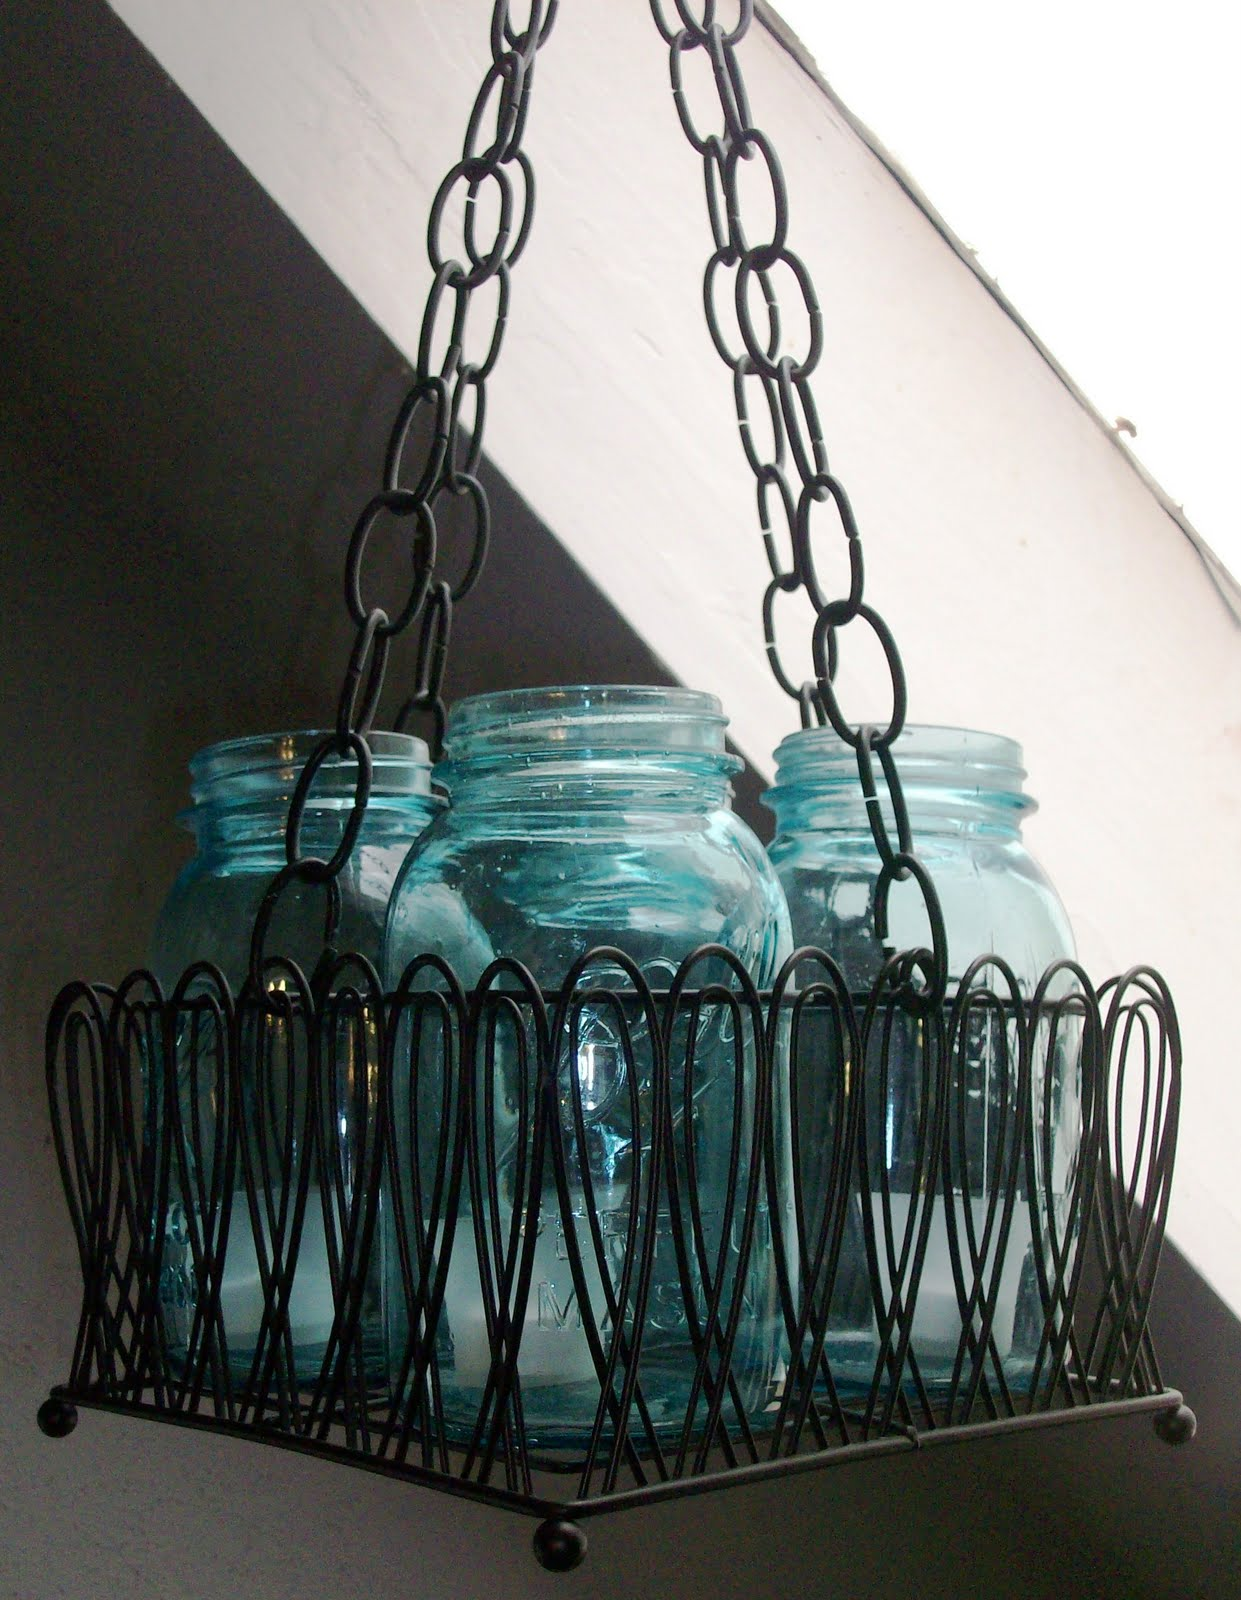 One Of My Favorites For A Long Time Has Been The Chandeliers Made With Blue Ball Mason Jars I Ve Working On This While What Do You Think